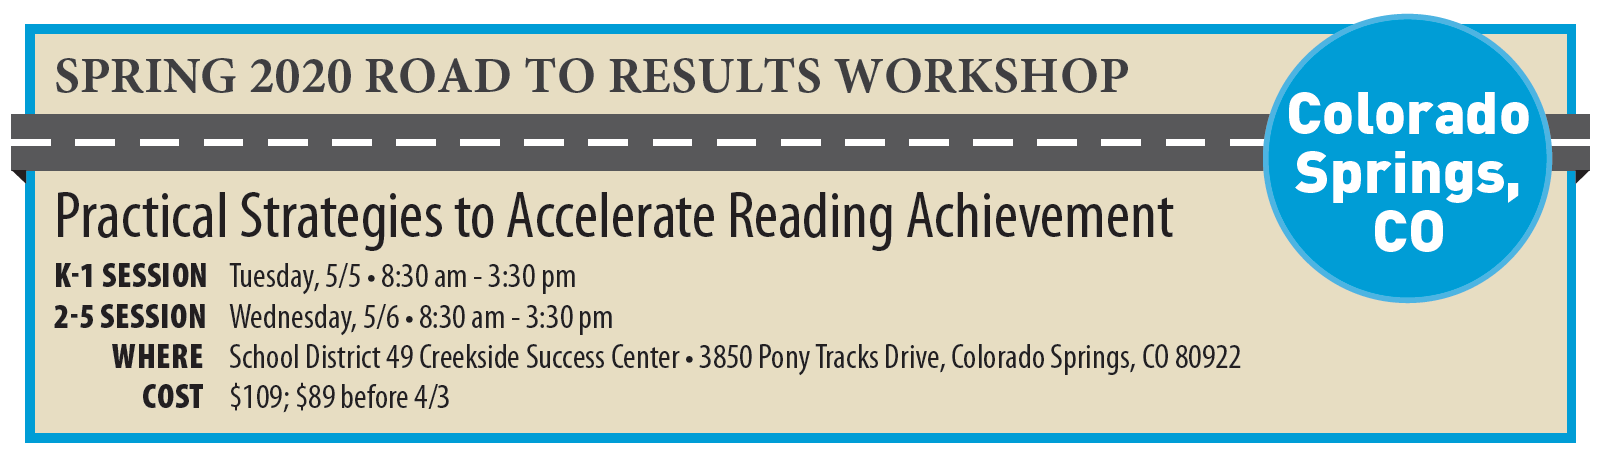 Colorado Springs Road to Results Details